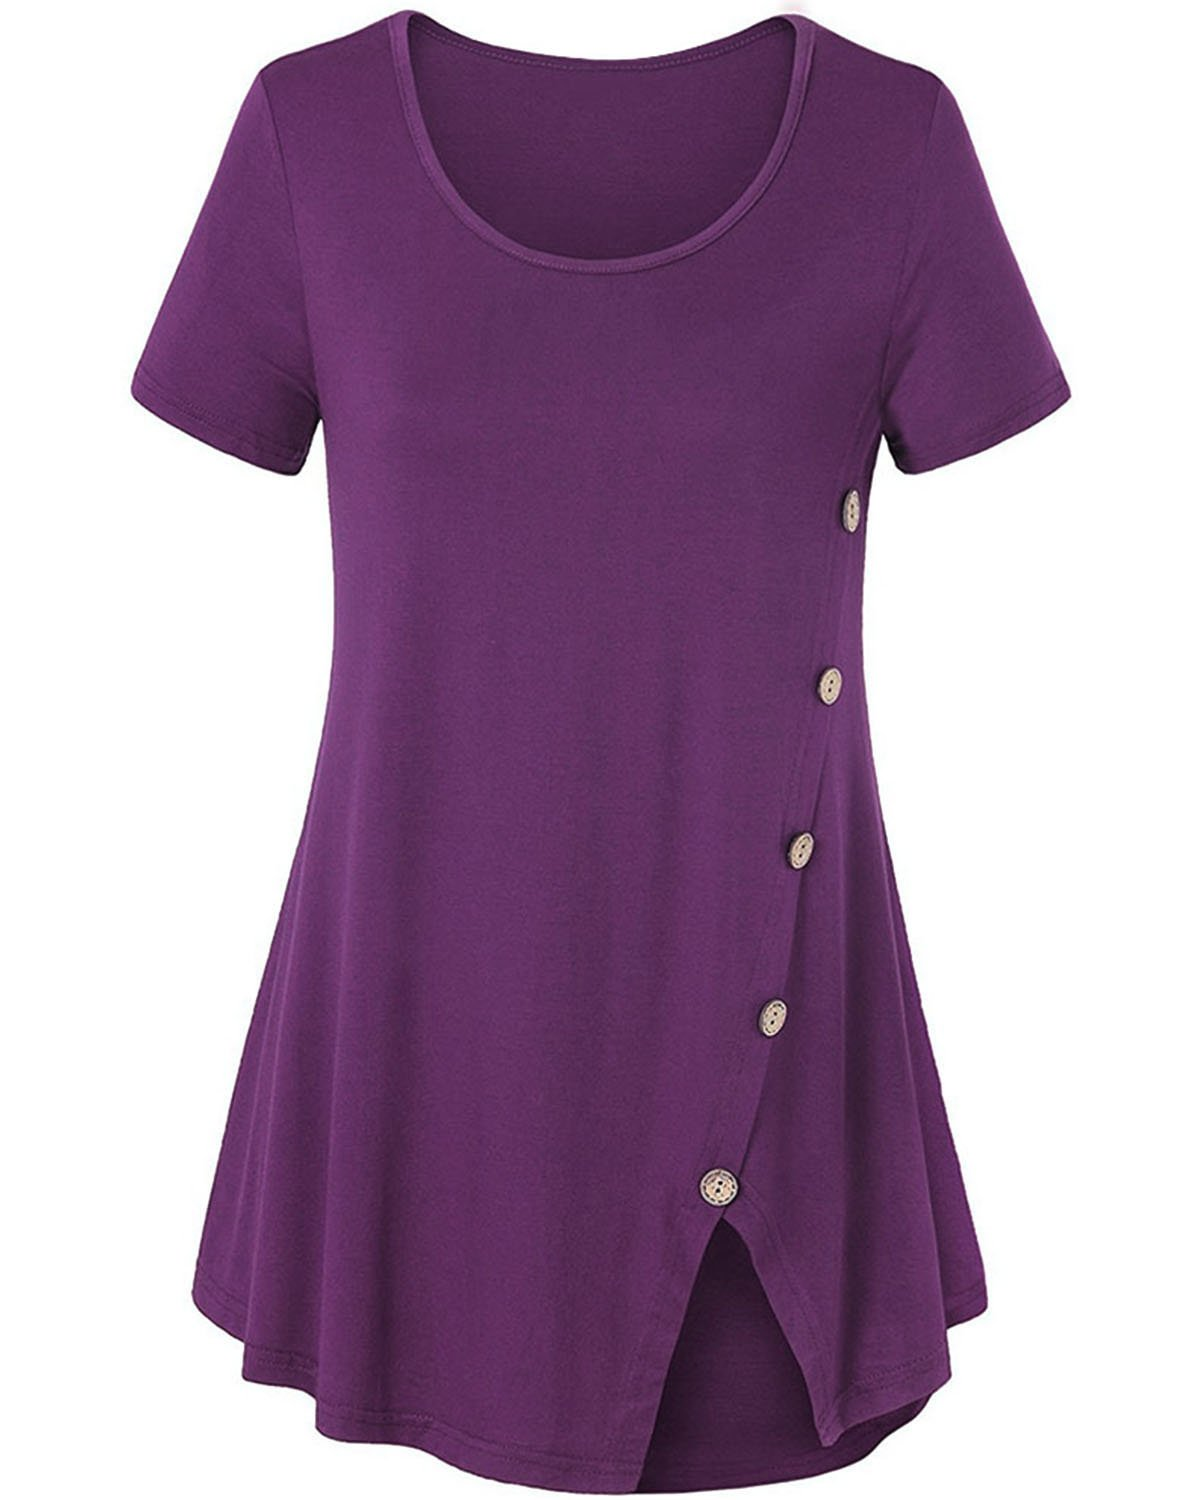 GAMISS Women's Short Sleeve Tunic Tops Split Hemline Casual Loose Blouse T-Shirts Top with Buttons Purple XL